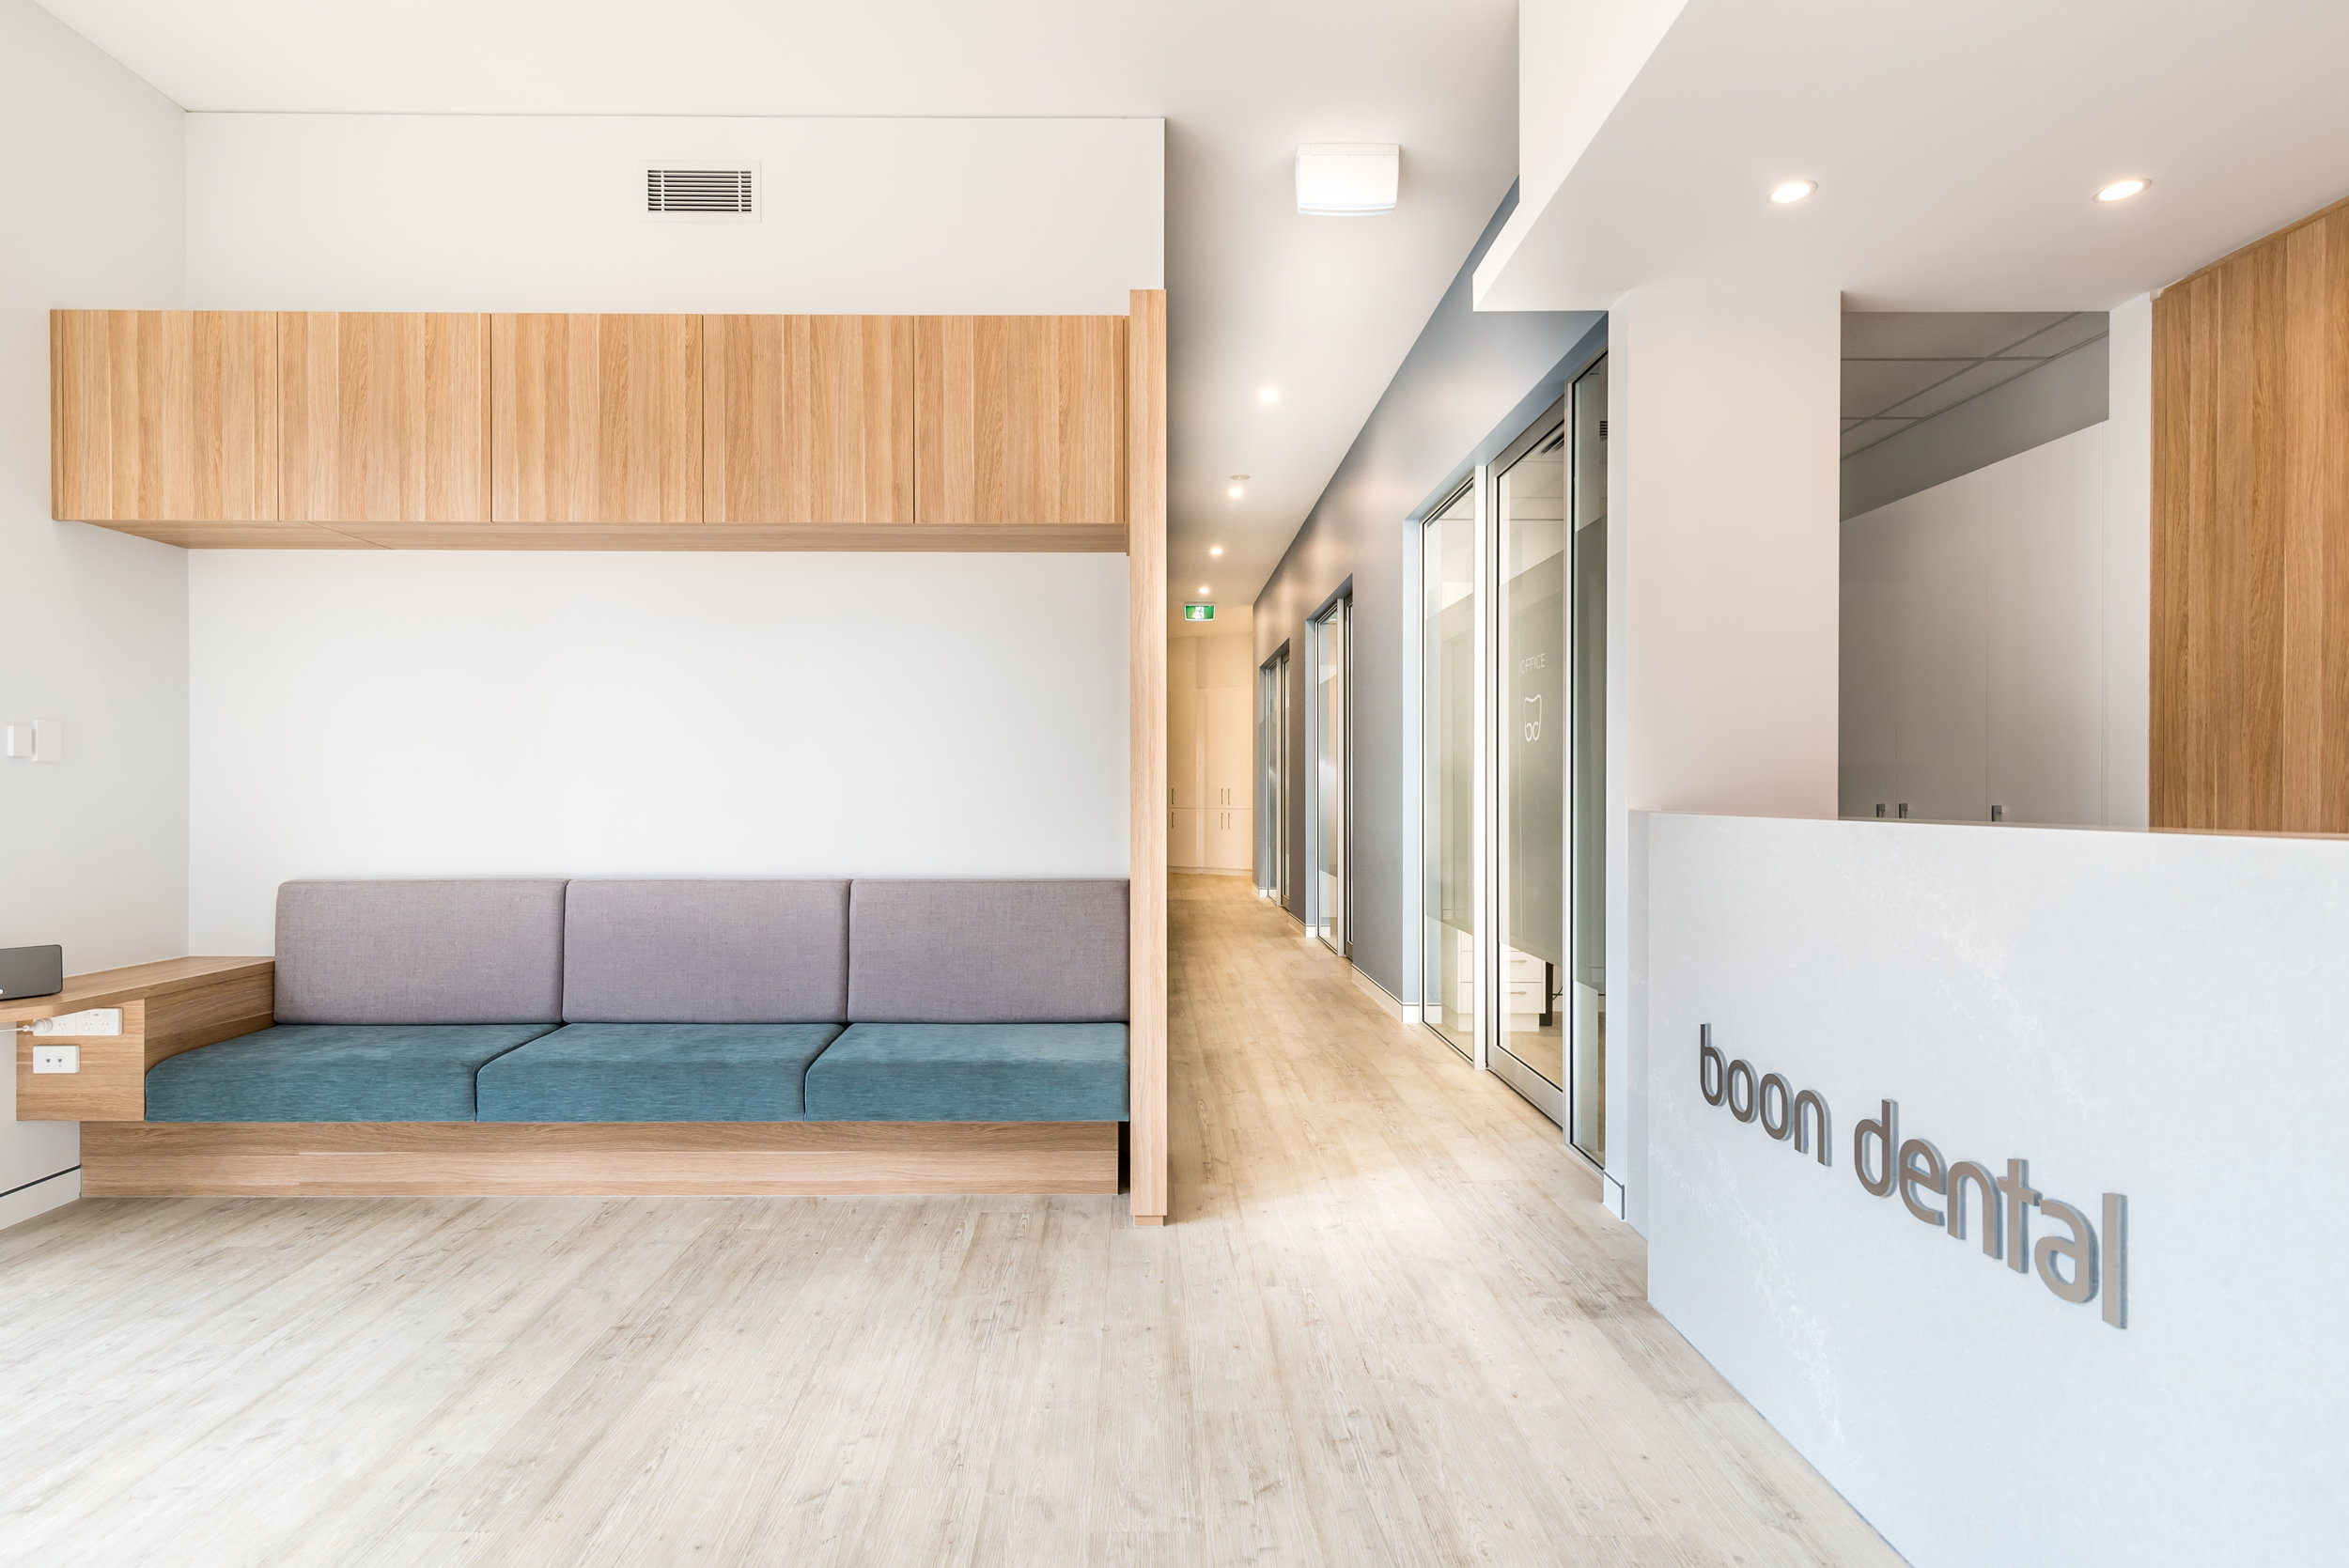 Commodore Dental and Medical Fitout - Sydney-36.jpg